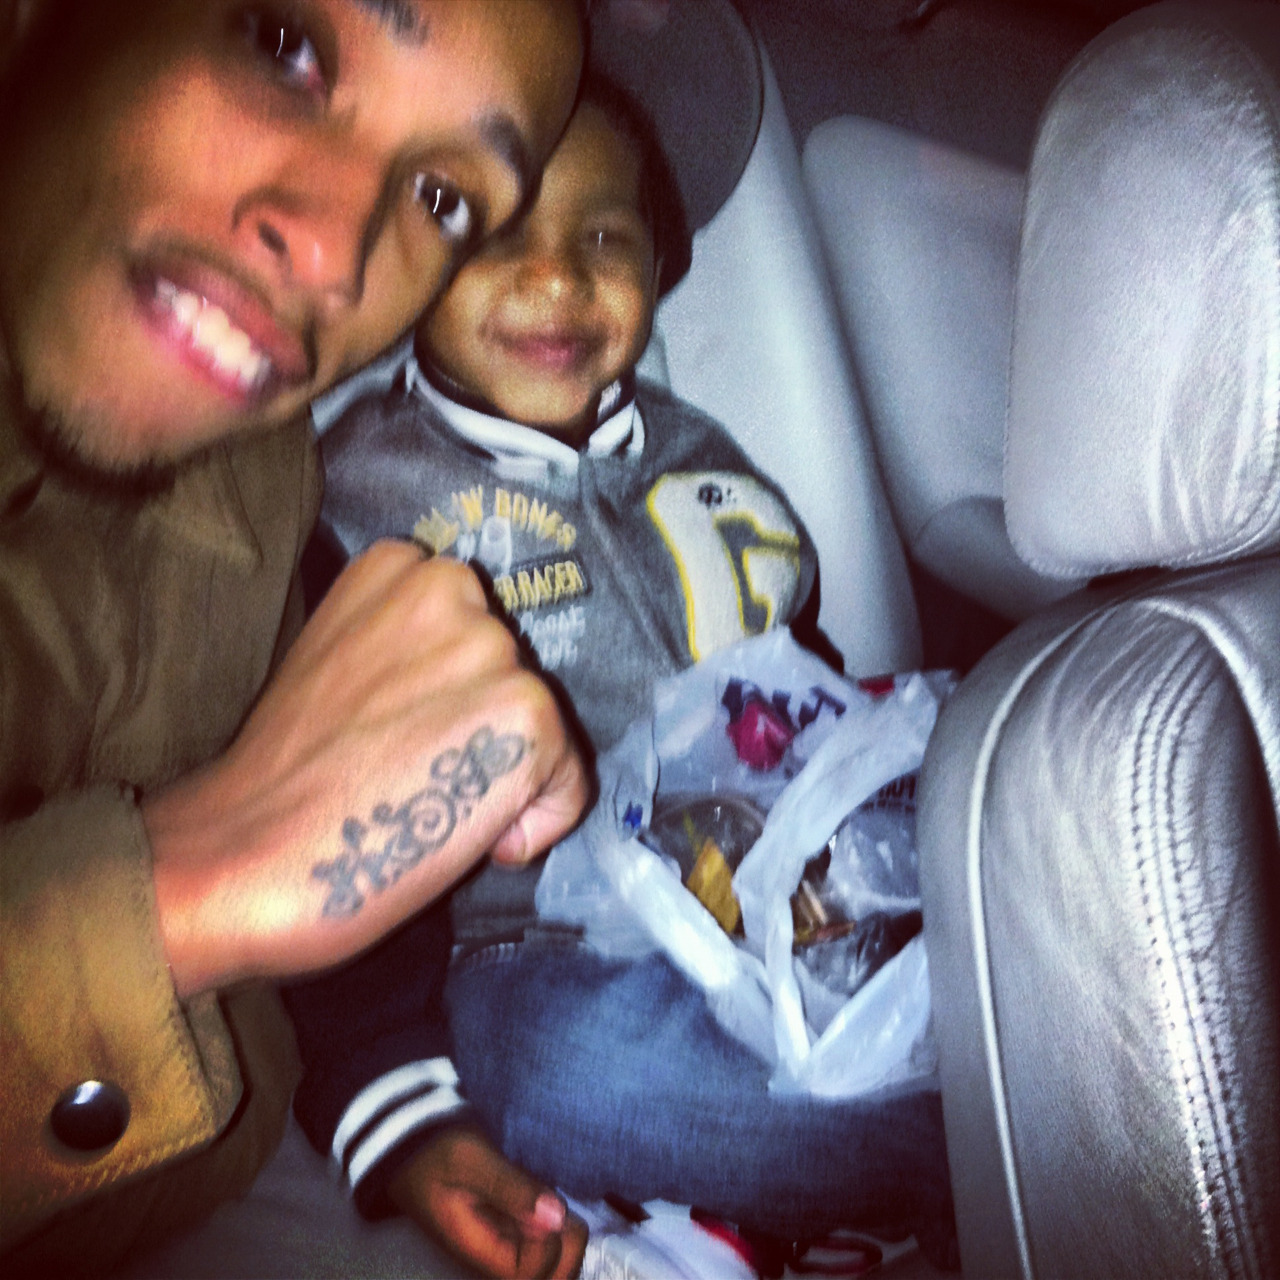 Me & the Lil homie….just ridin , just ridin !